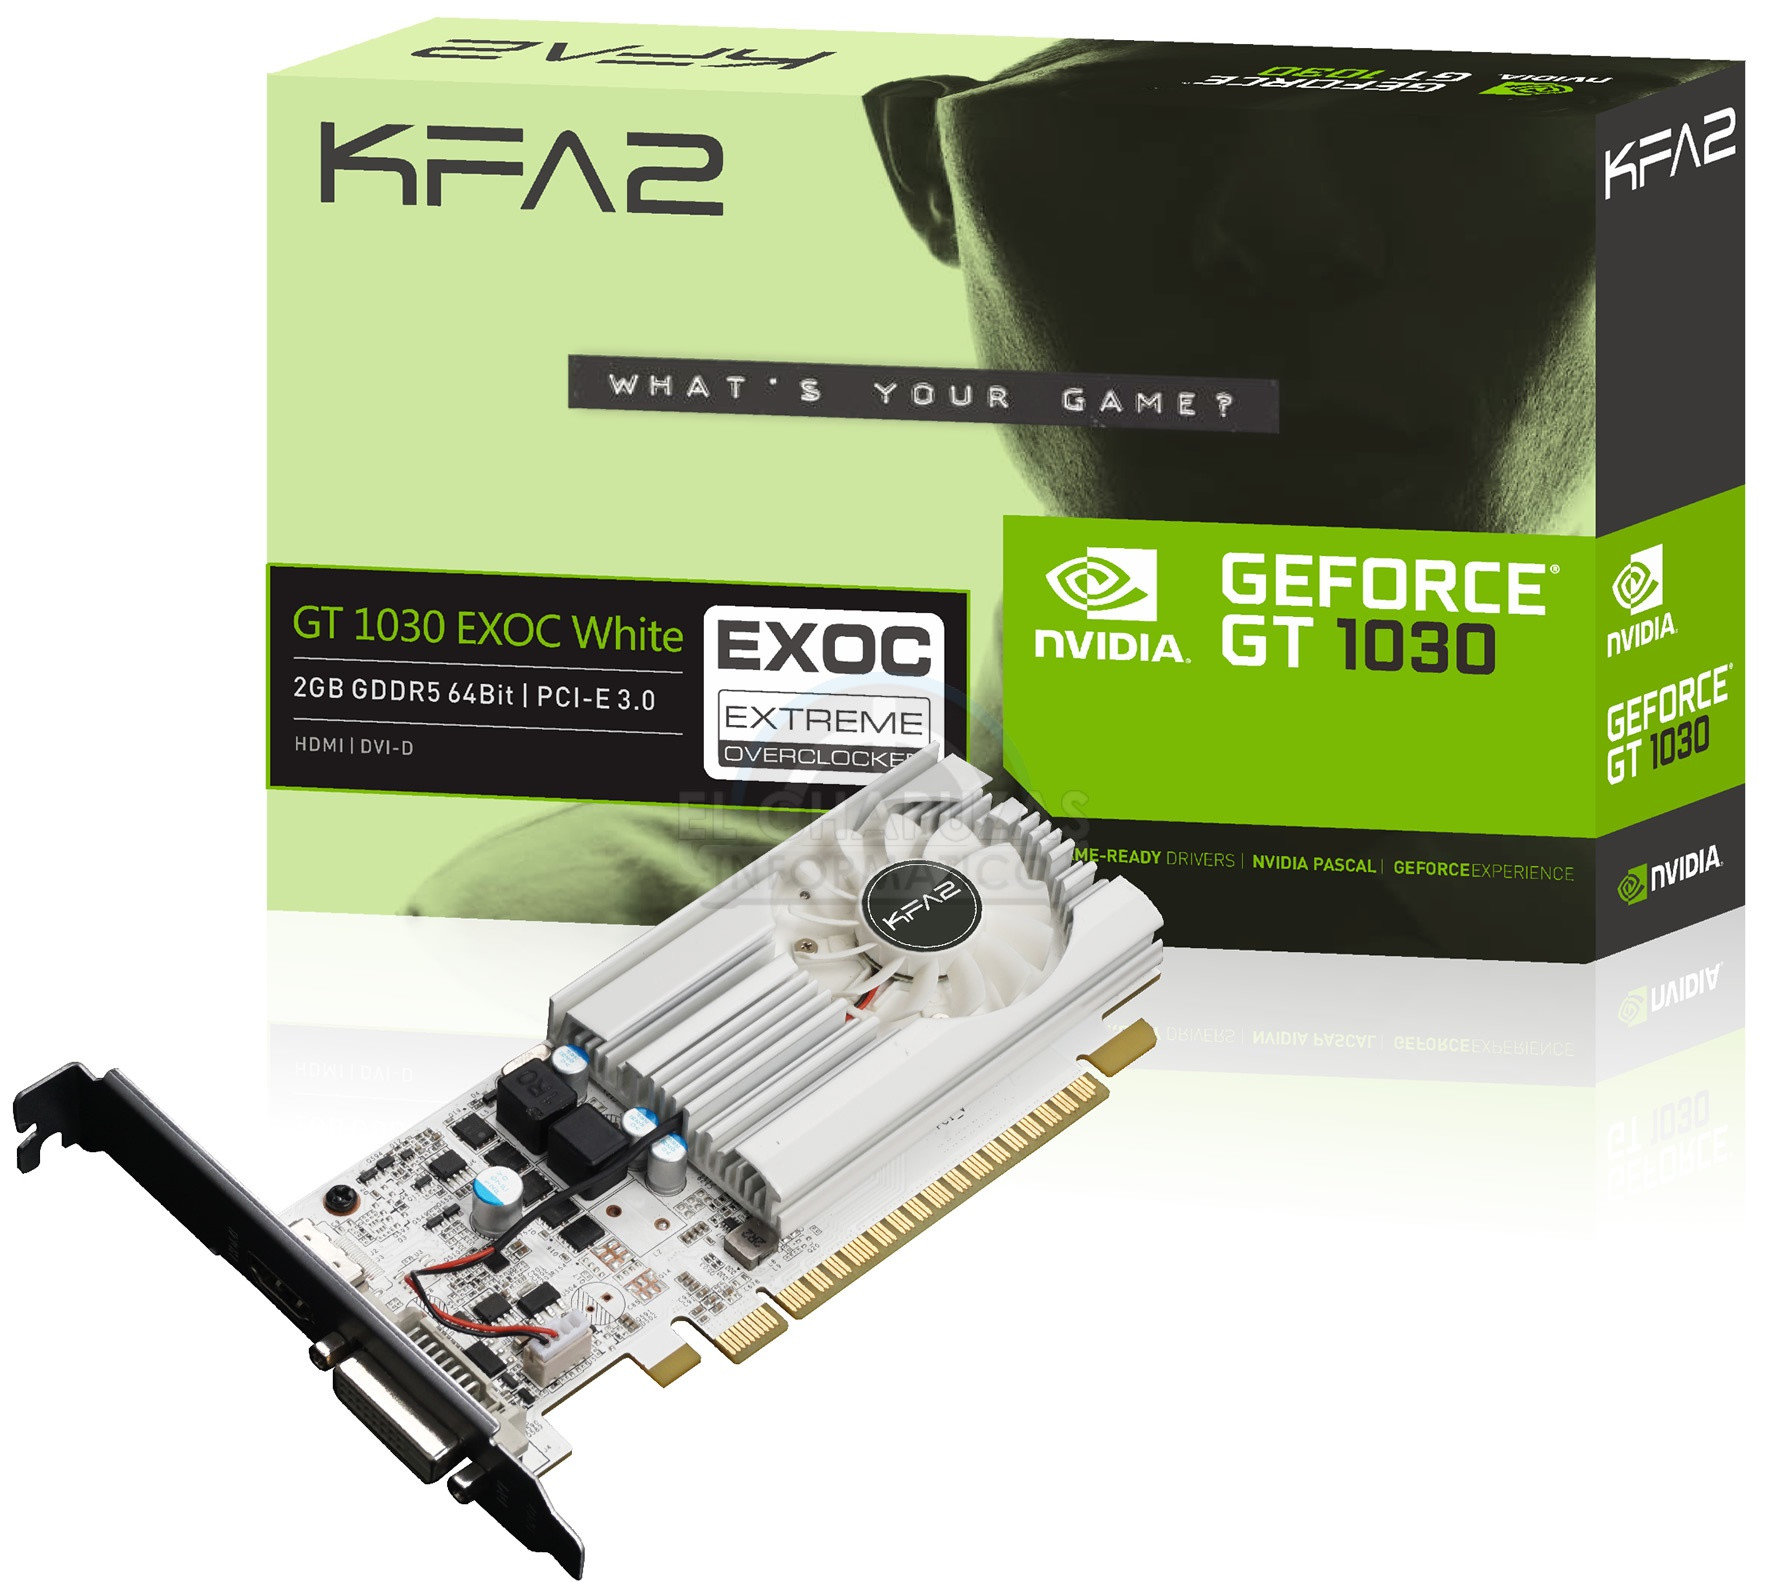 KFA2 GeForce GT 1030 EXOC White 600 01